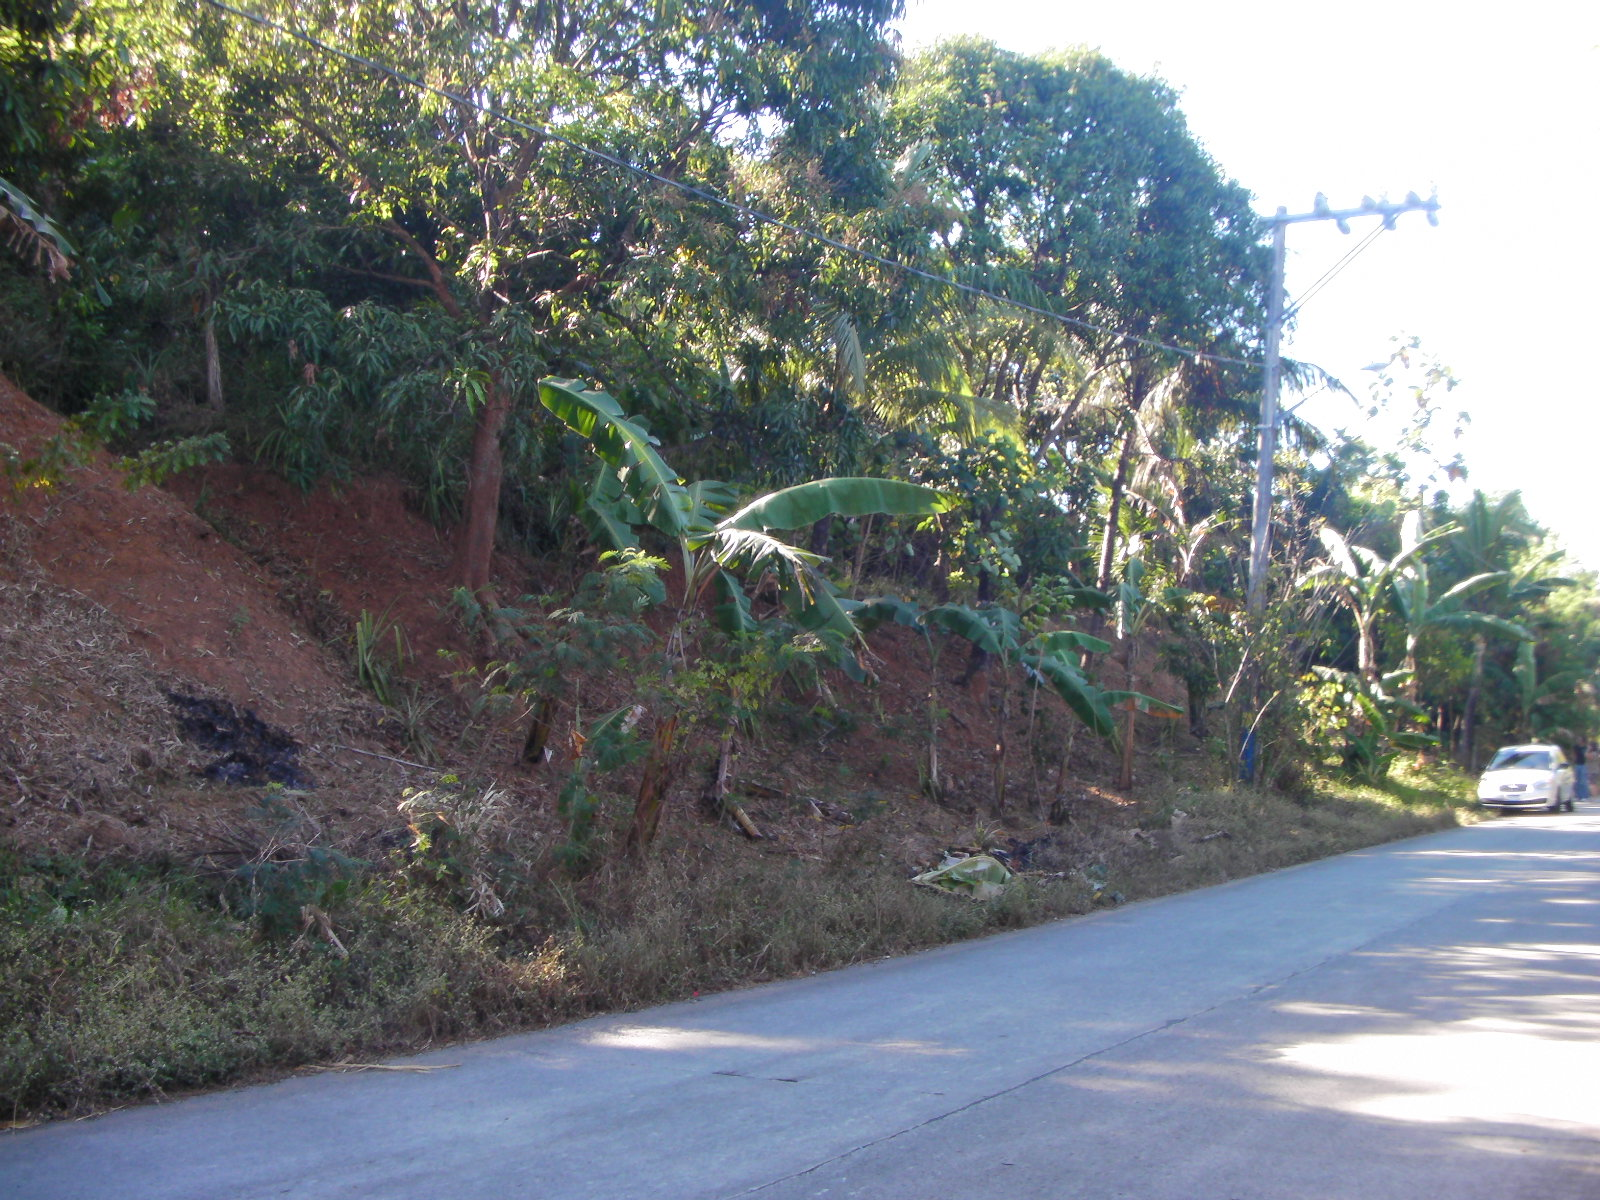 FOR SALE: Lot / Land / Farm Rizal > Other areas